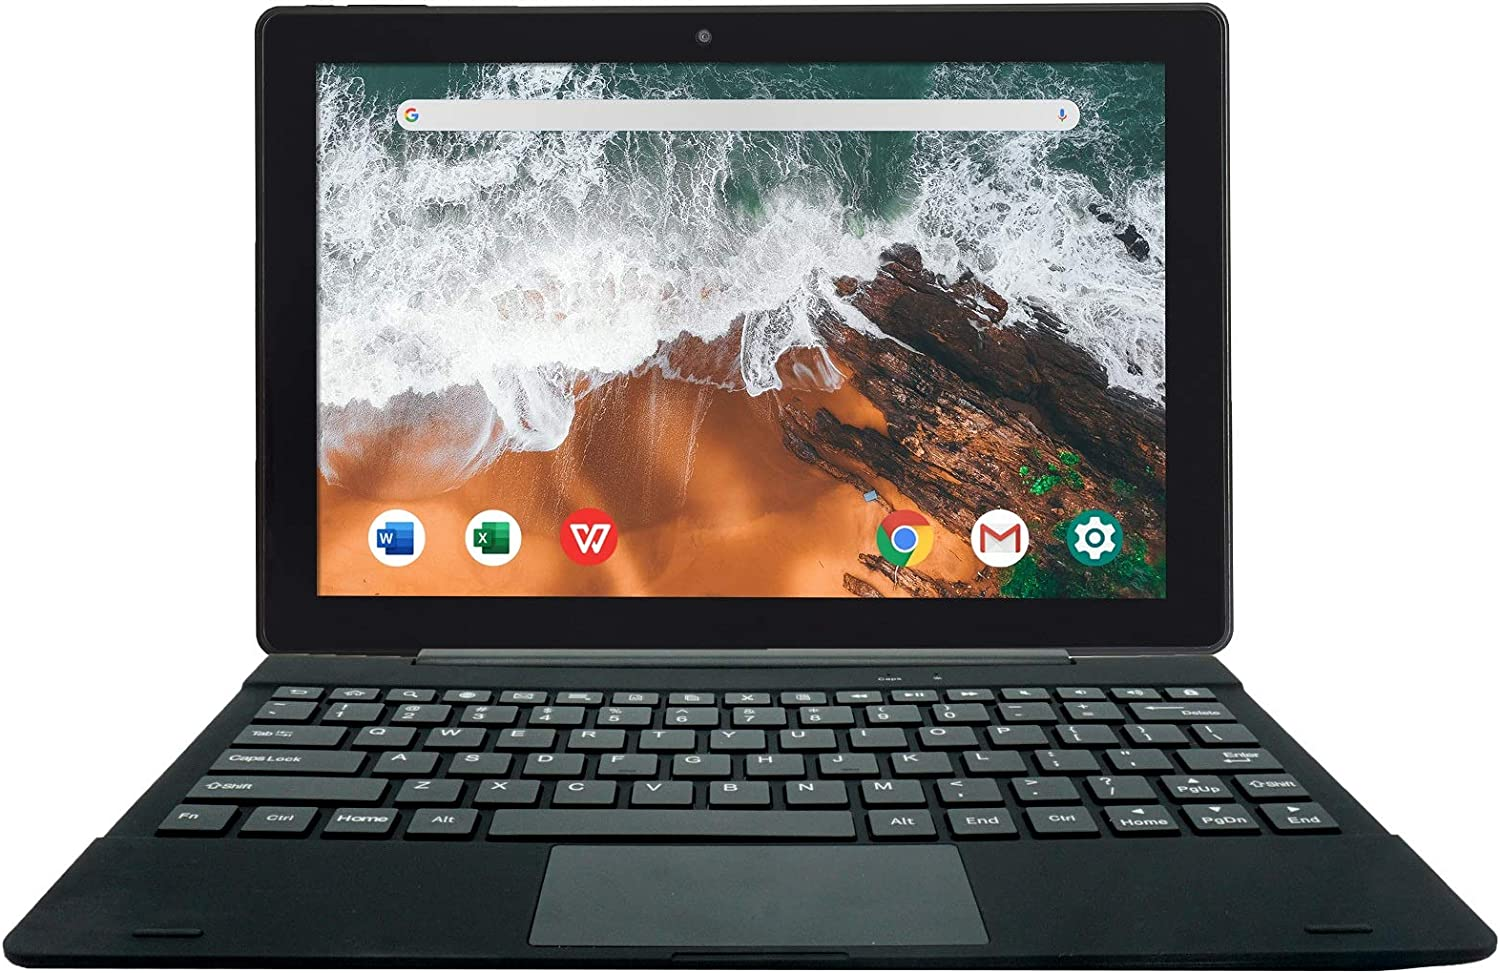 Simbans TangoTab 10 Inch Tablet and Keyboard 2-in-1 Laptop, 4 GB RAM, 64 GB Disk, Android 10, Mini-HDMI, Micro-USB, USB-A, Inbuilt GPS, Dual WiFi, Bluetooth Computer PC -TX4L